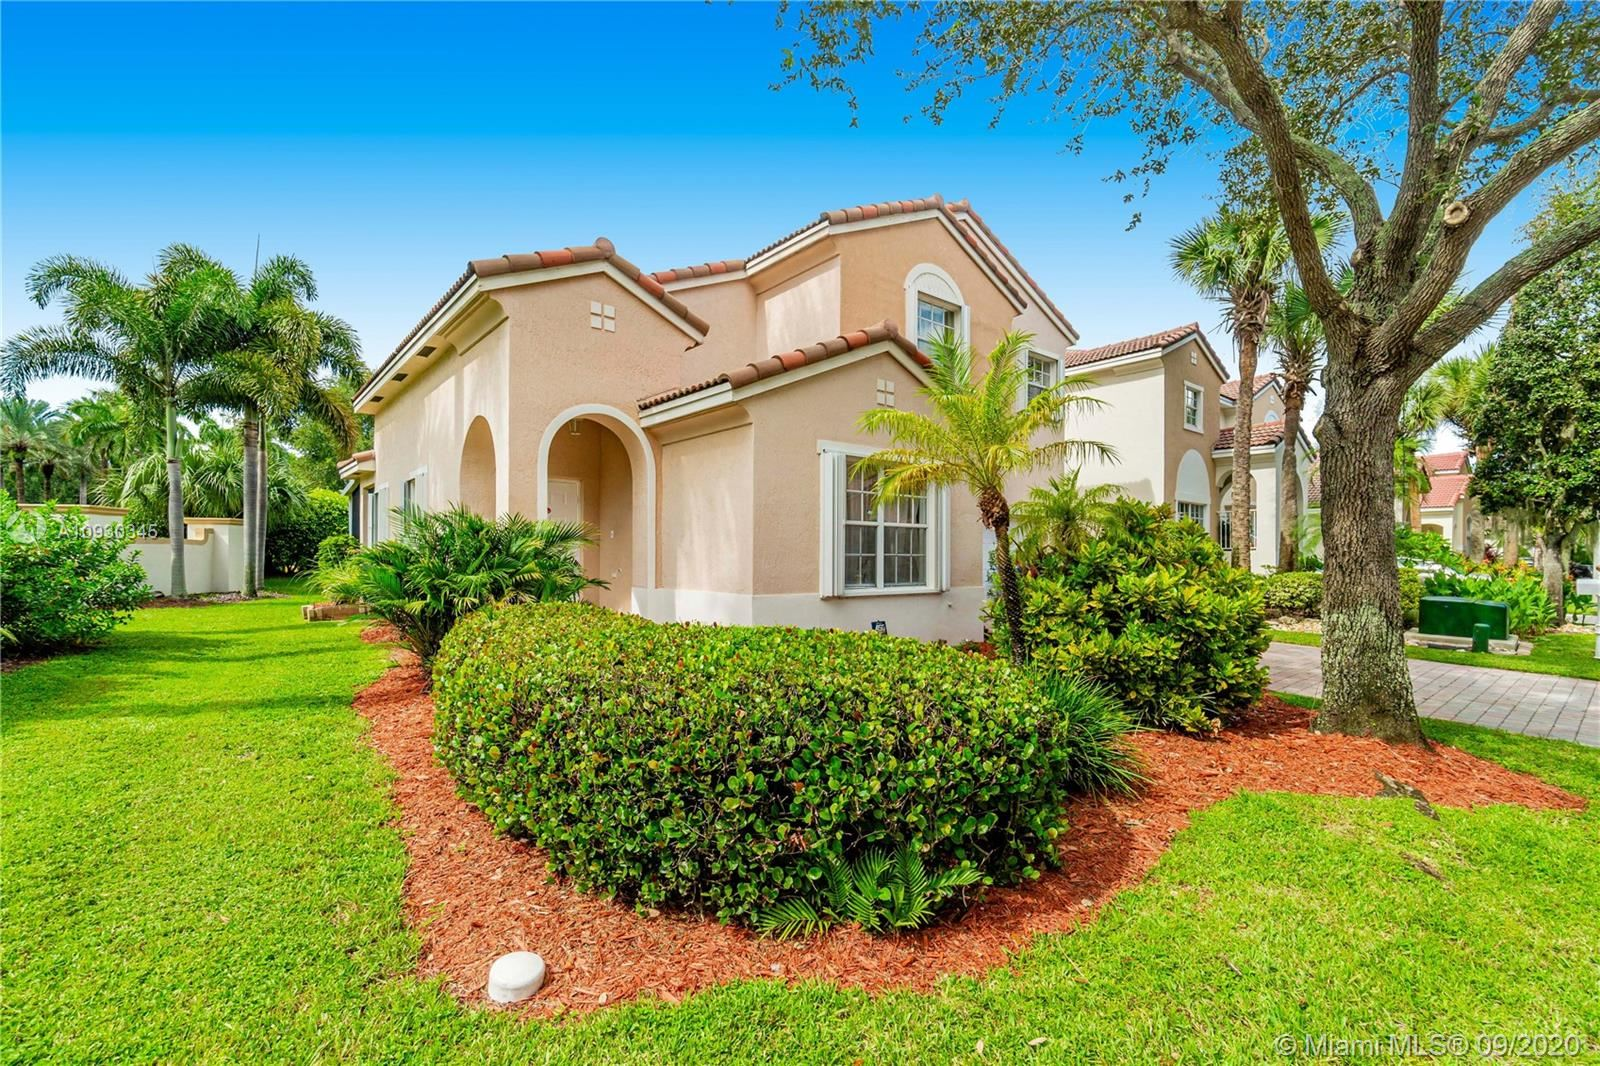 Photo of 7515 NW 19th Dr, Pembroke Pines, FL 33024 (MLS # A10930345)